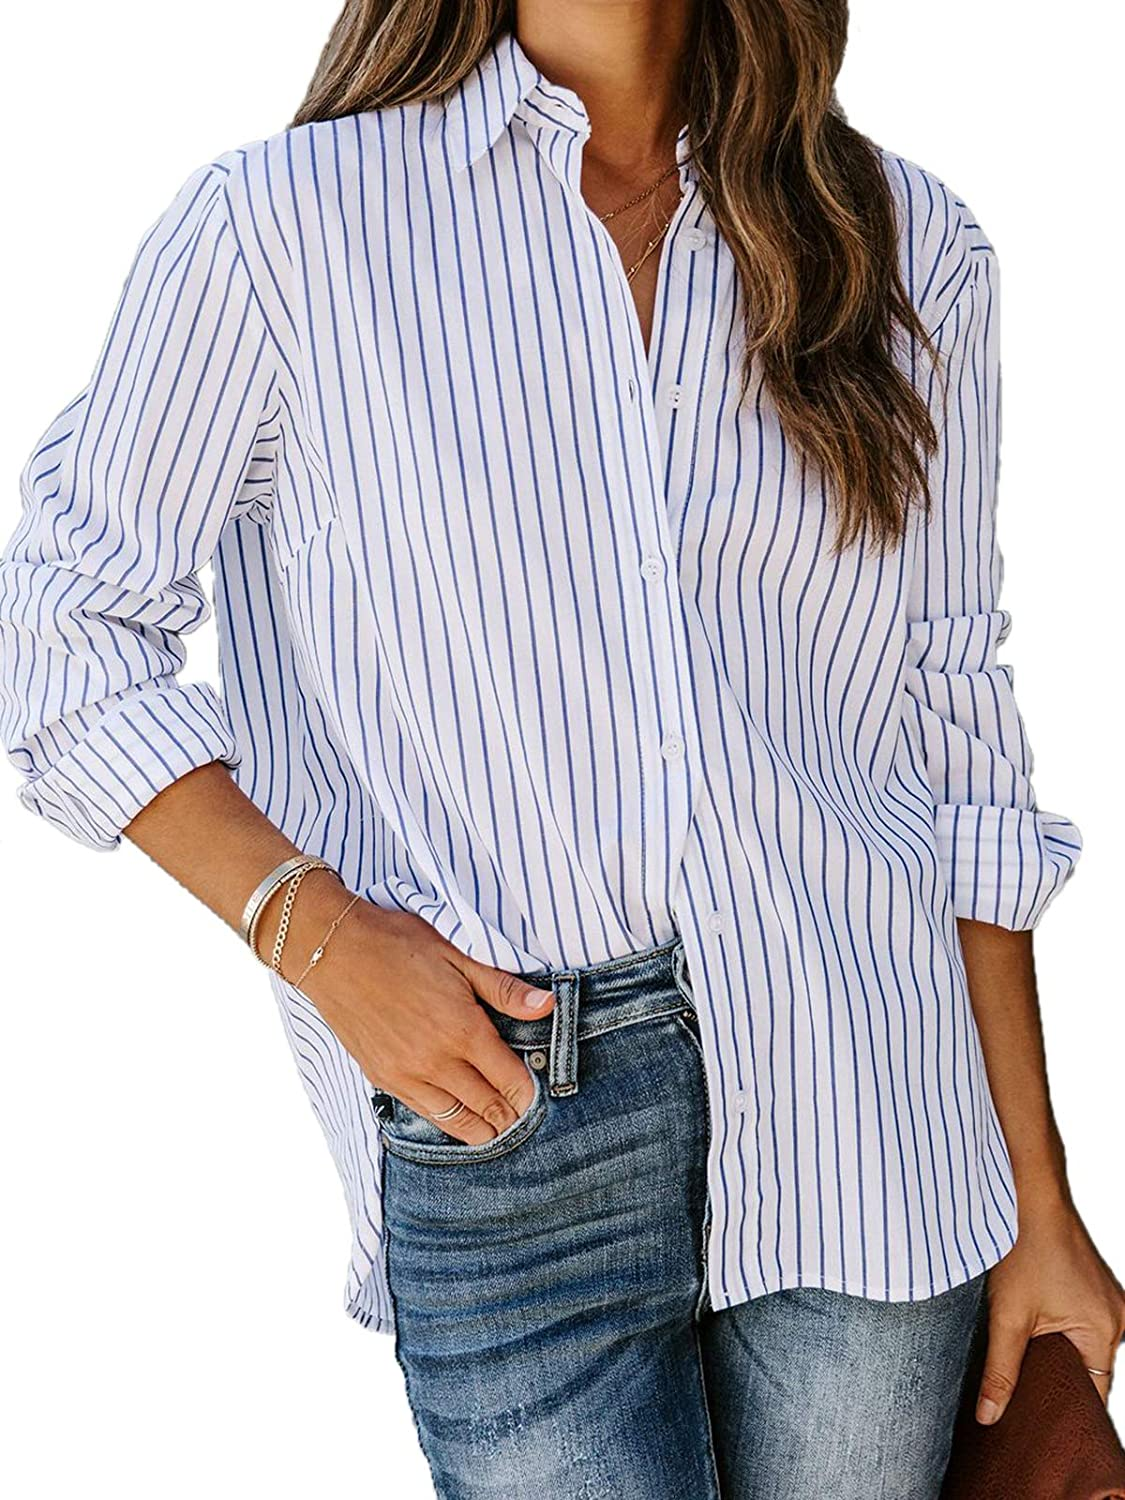 Bellastory Women's Plaid Button Down Shirts Long Sleeve Blouses Flannel Oversized Tunic Tops with Pockets